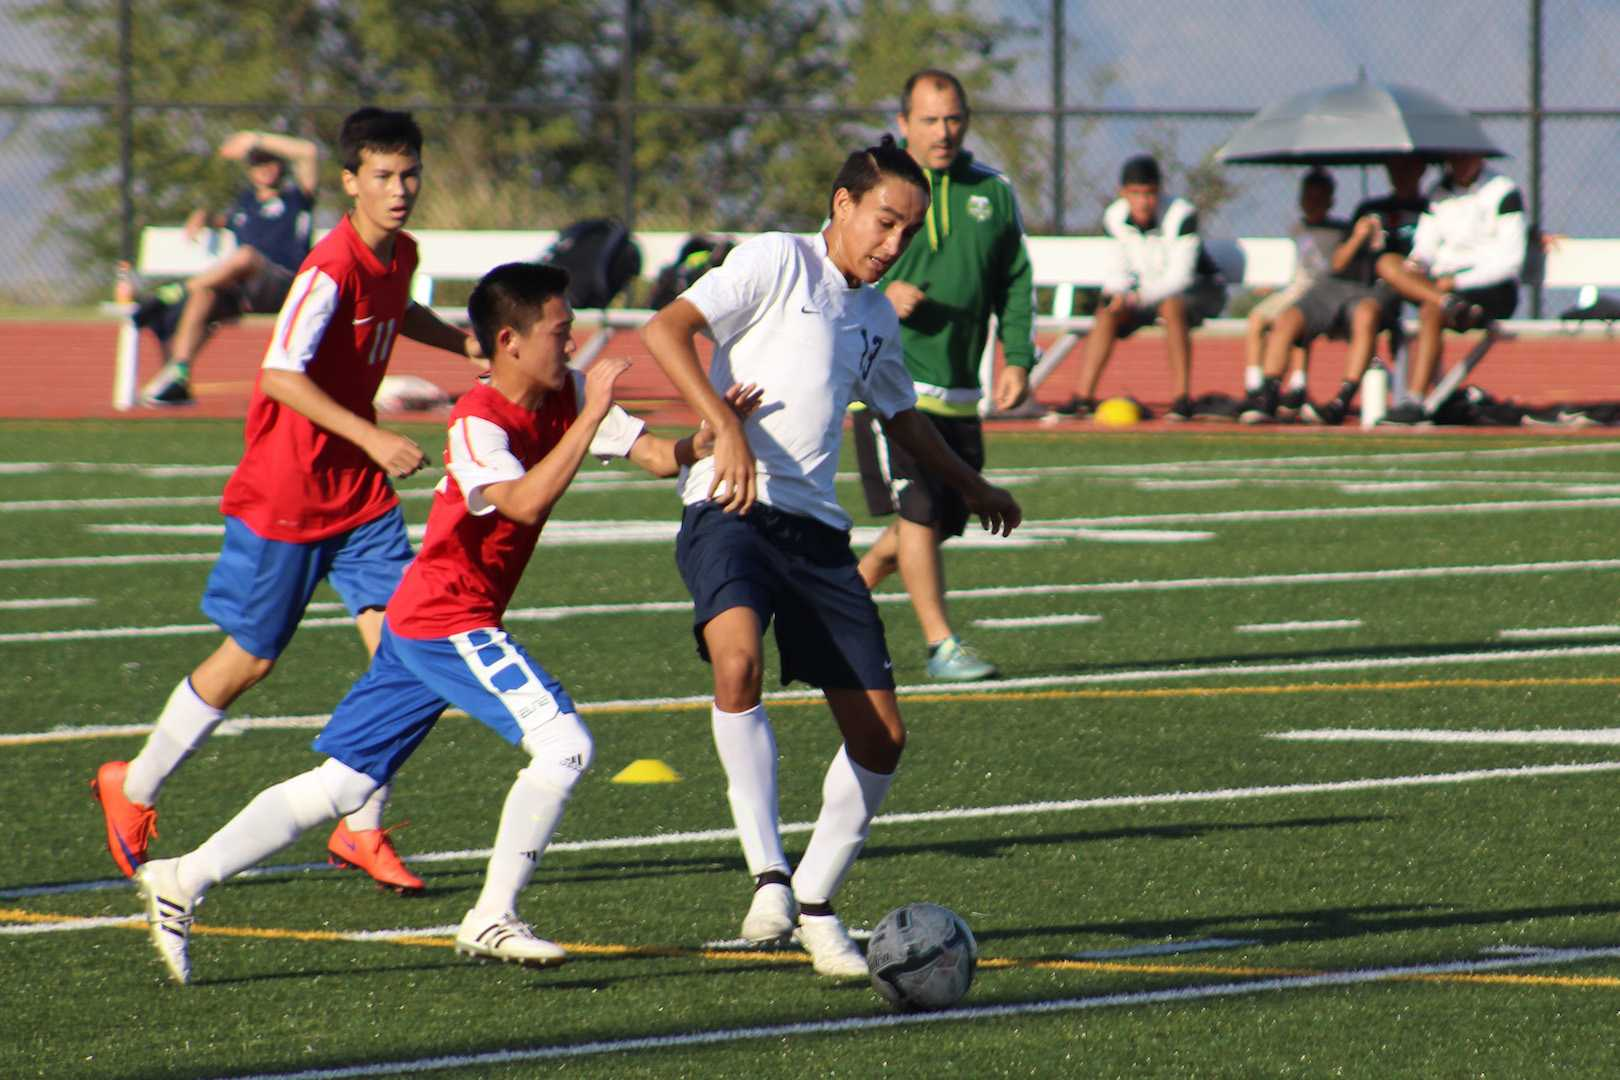 Sophomore Aikalaokekainalu Chappell keeps the ball under control from the Lunas. The jv boys gained their third consecutive win with a 4-0 rout of the Lunas.